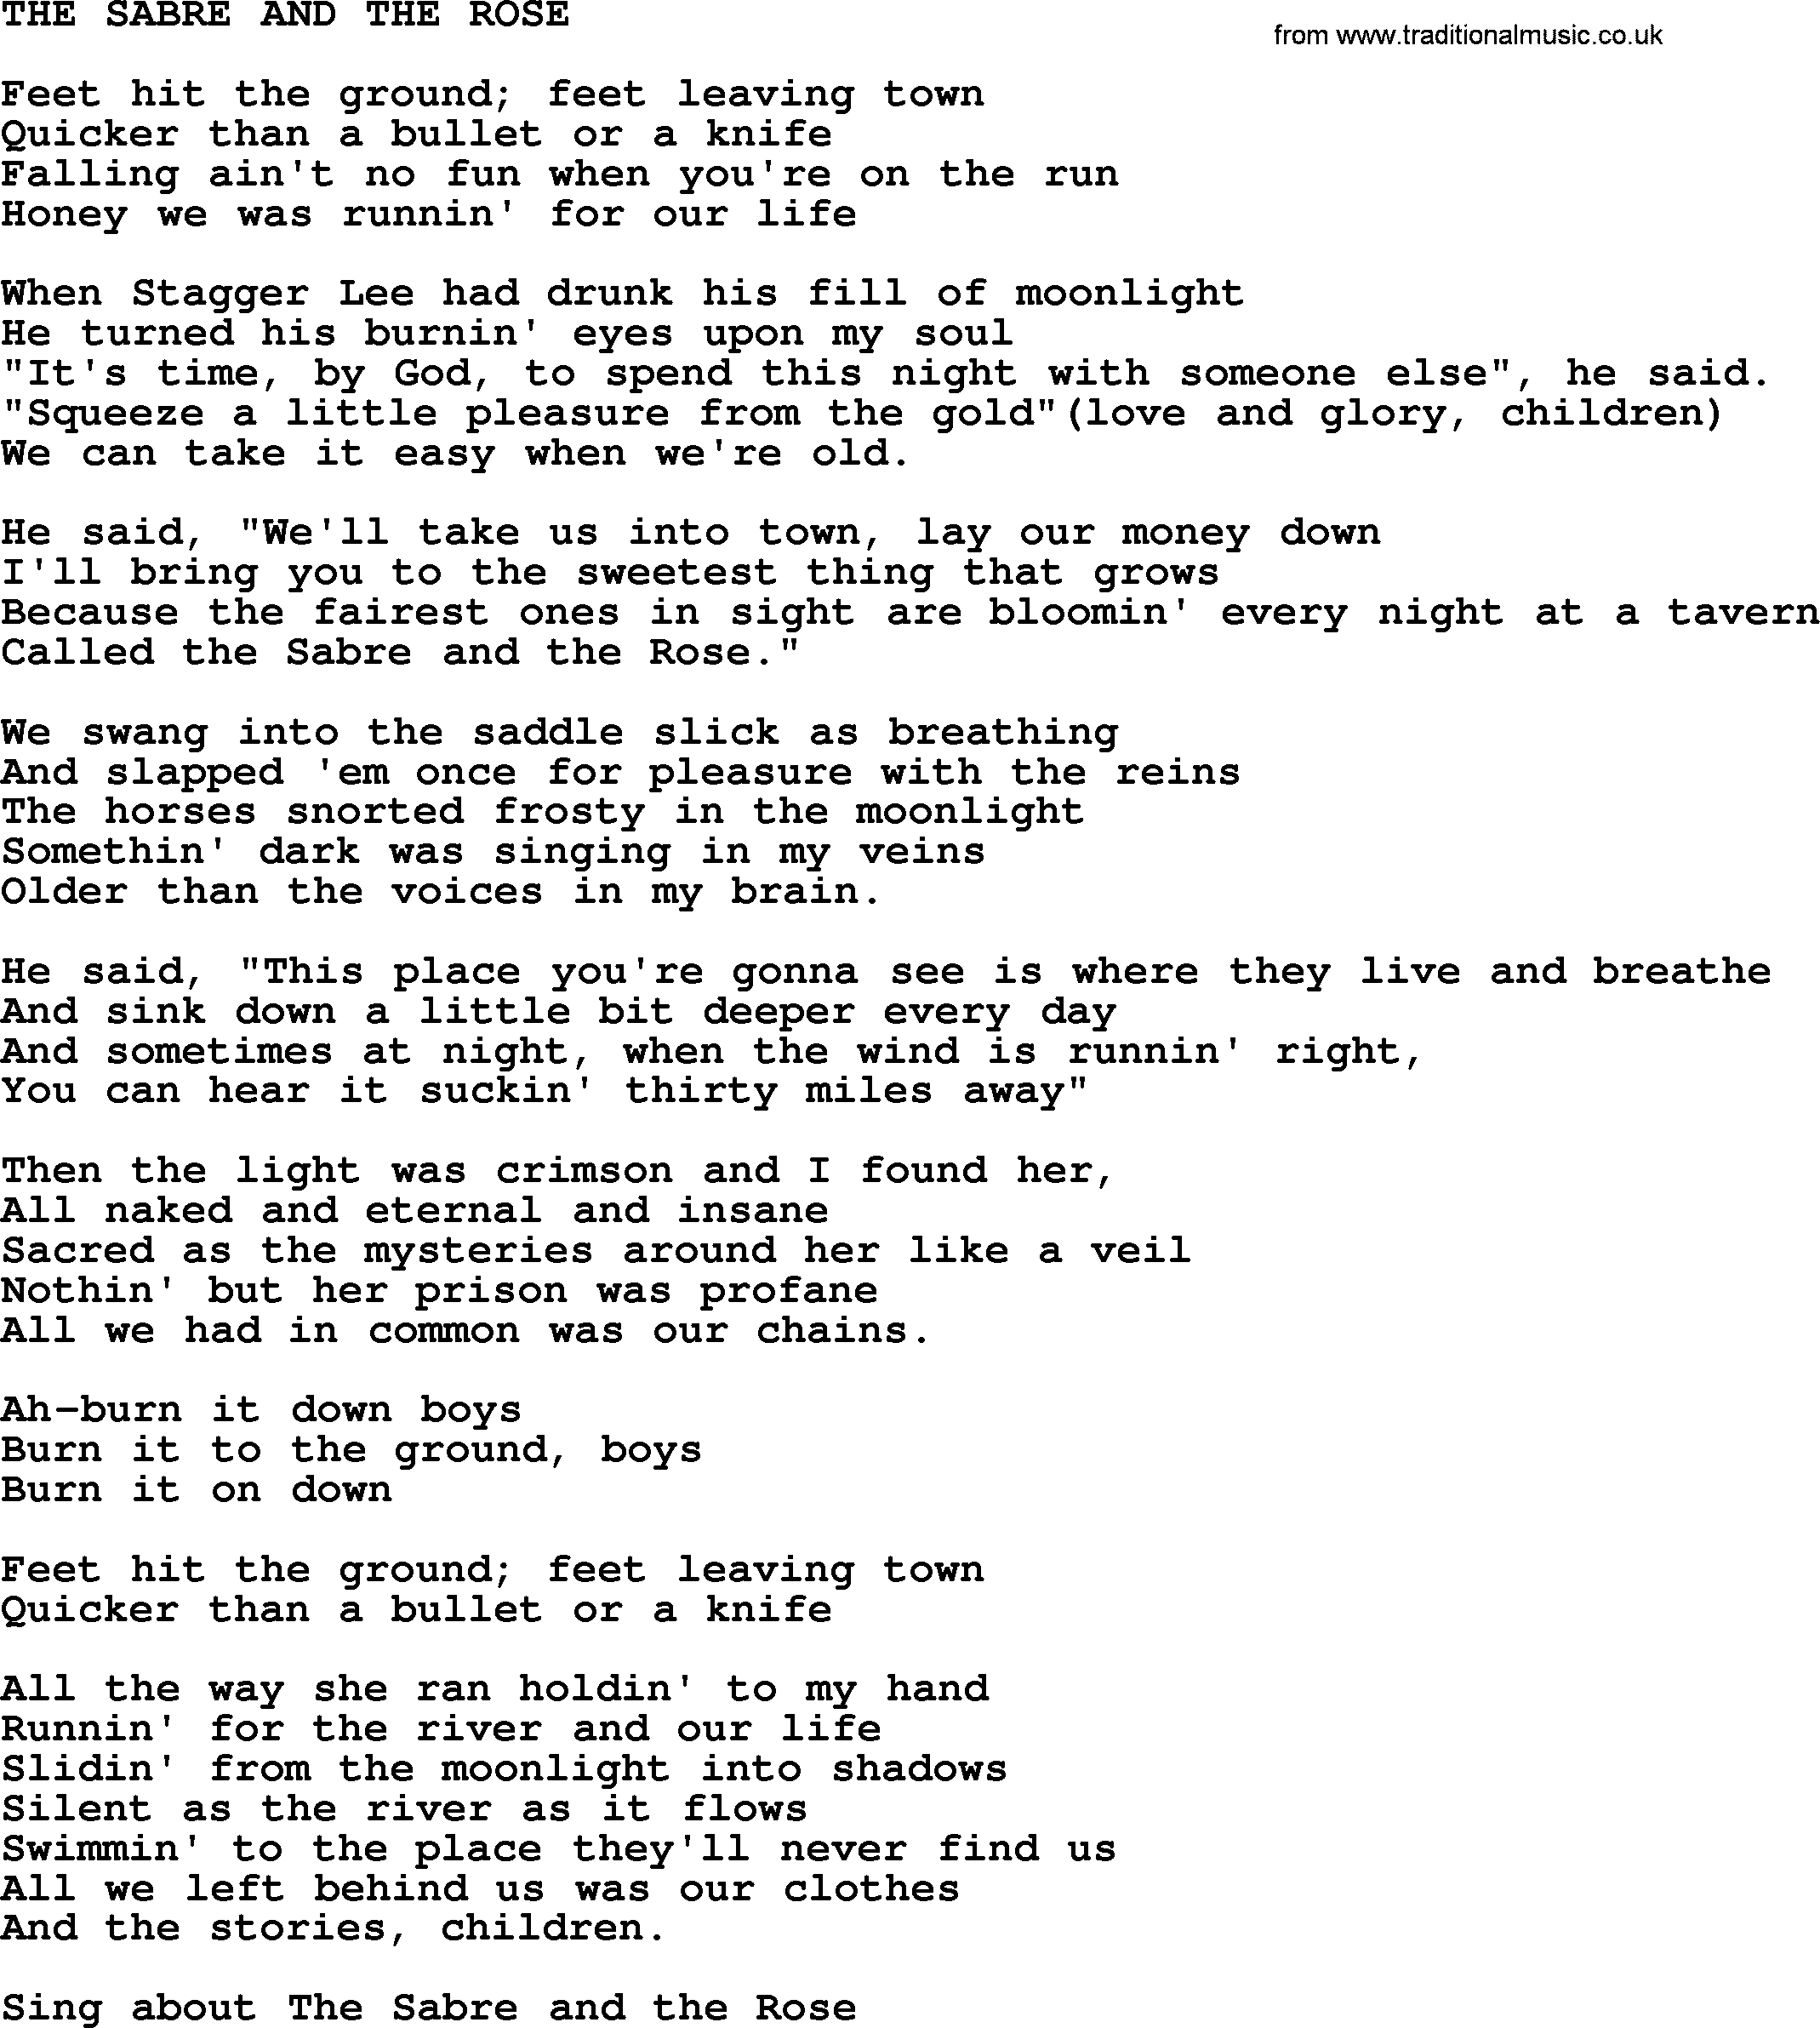 Kris Kristofferson Song The Sabre And The Rosetxt Lyrics And Chords